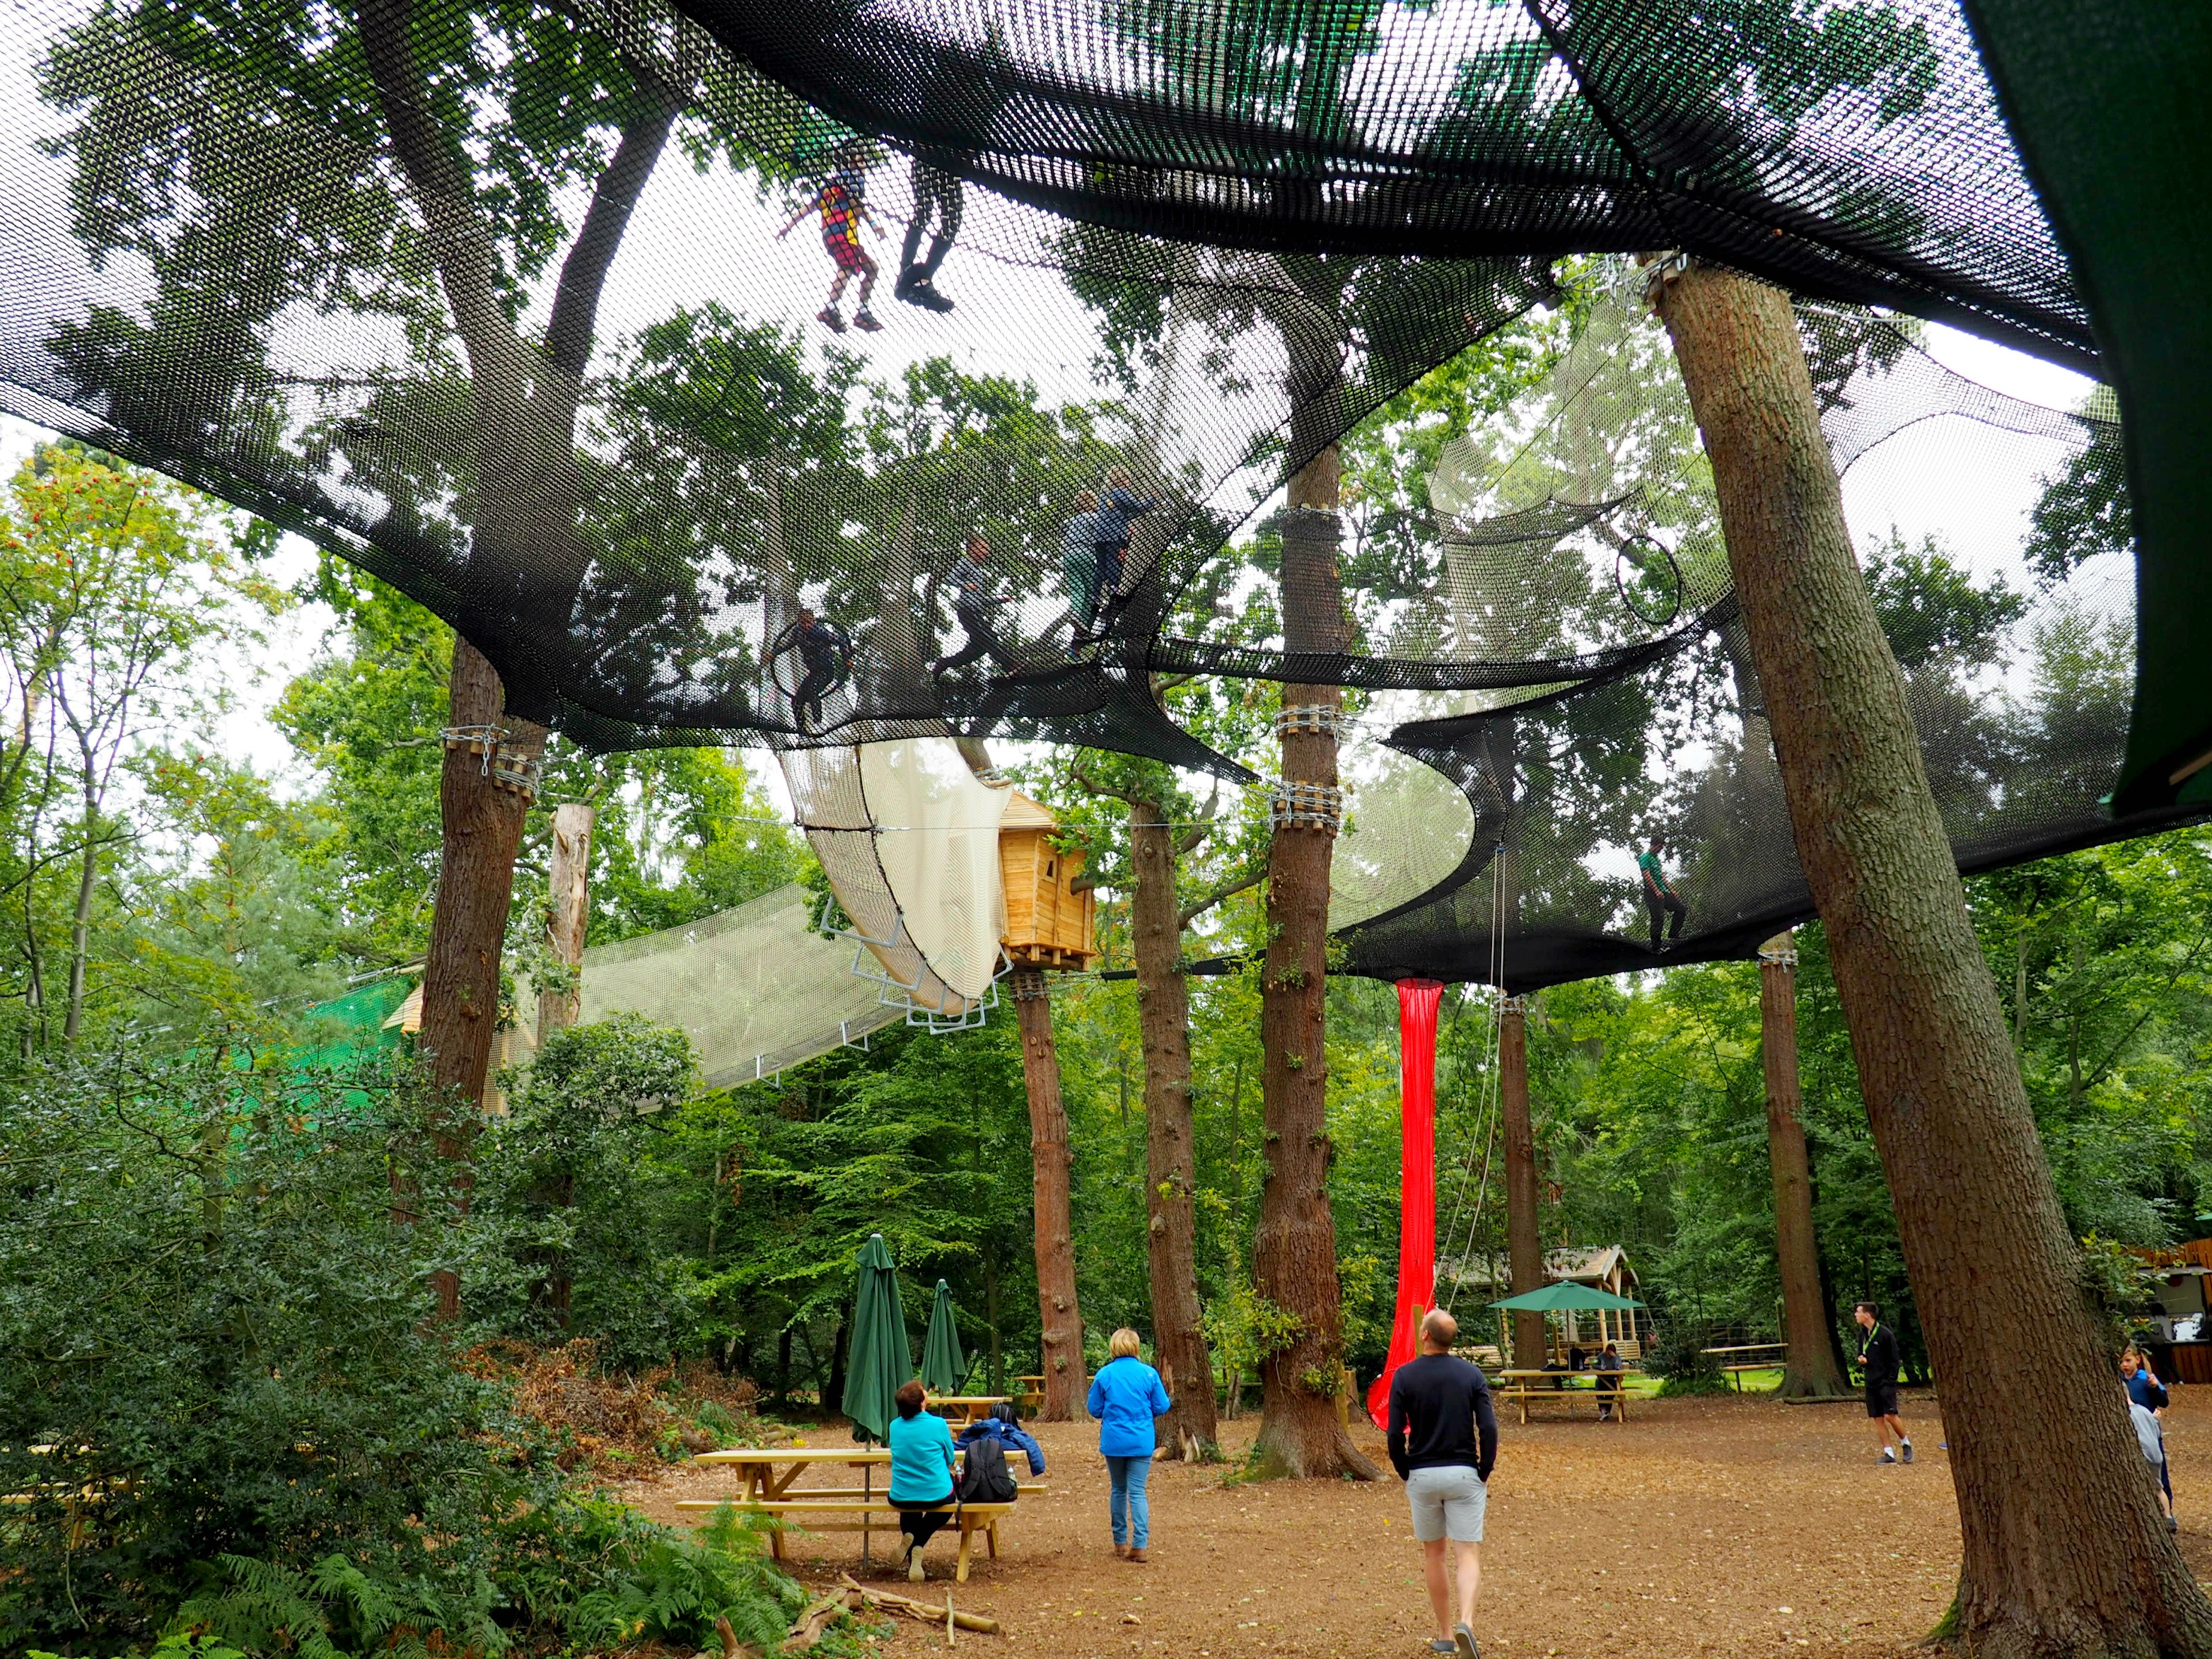 A day at Go Ape Black Park 'Nets Kingdom' – A Review